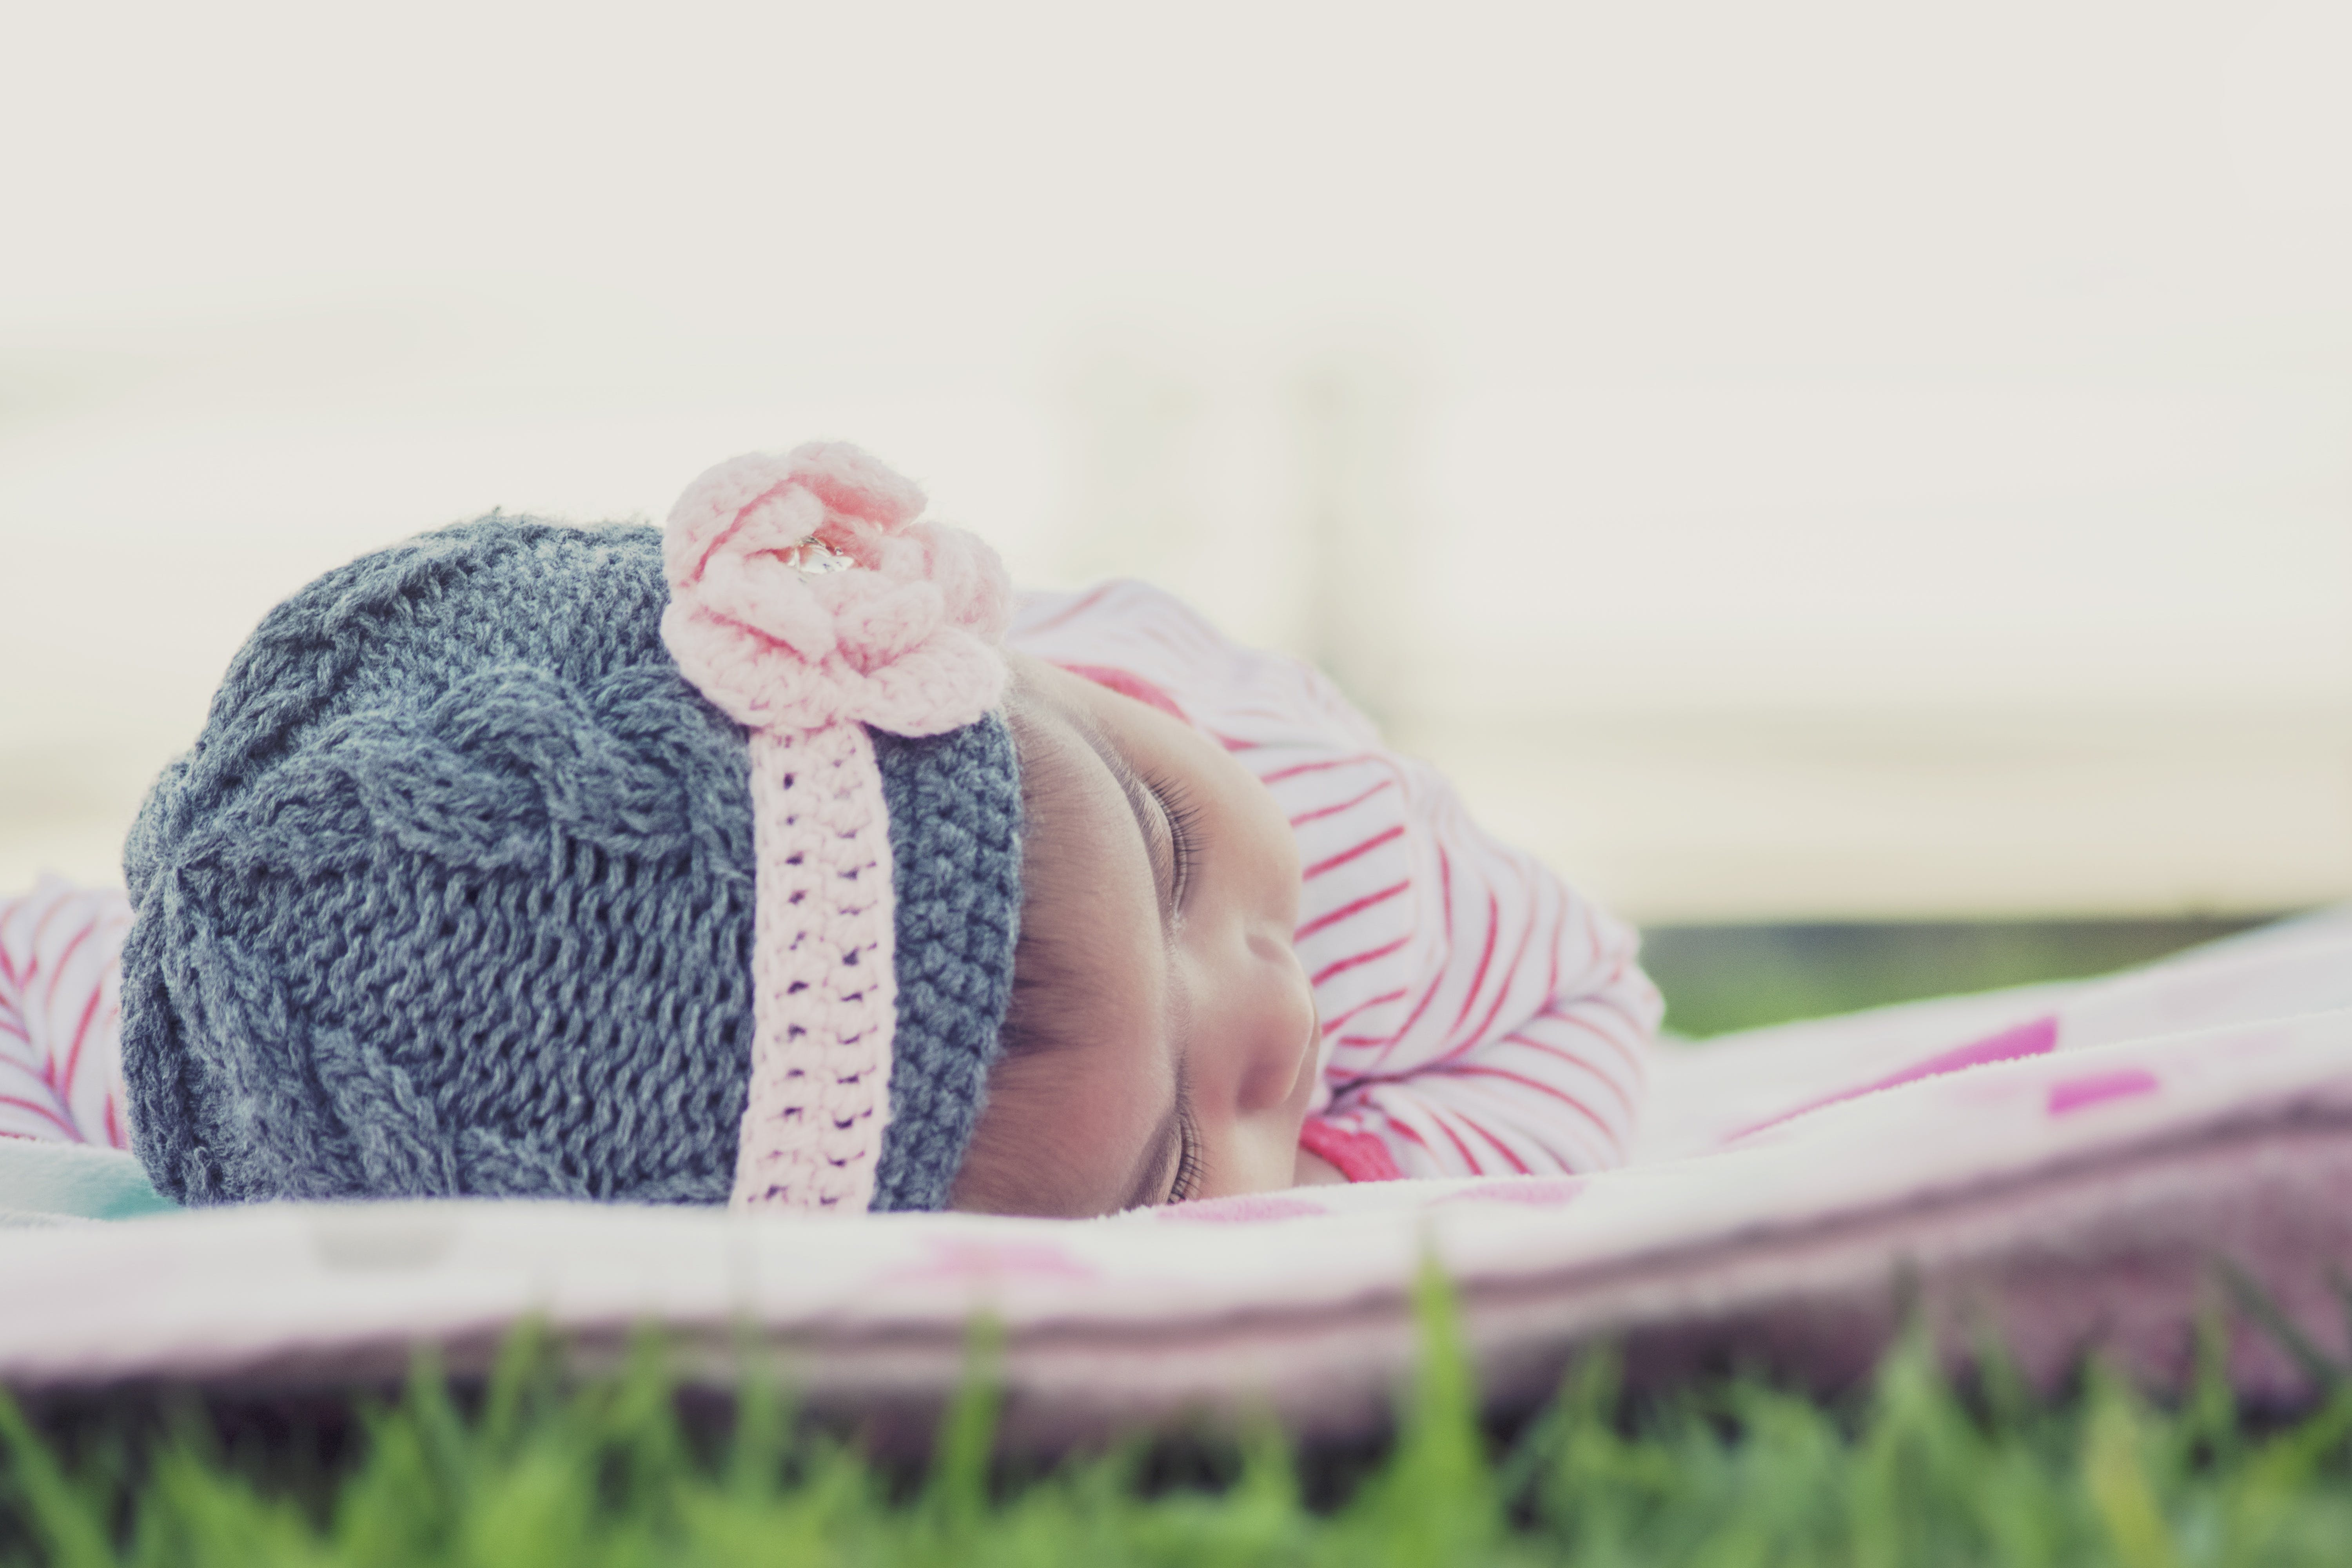 Free stock photo of baby, blanket, gray, lay down